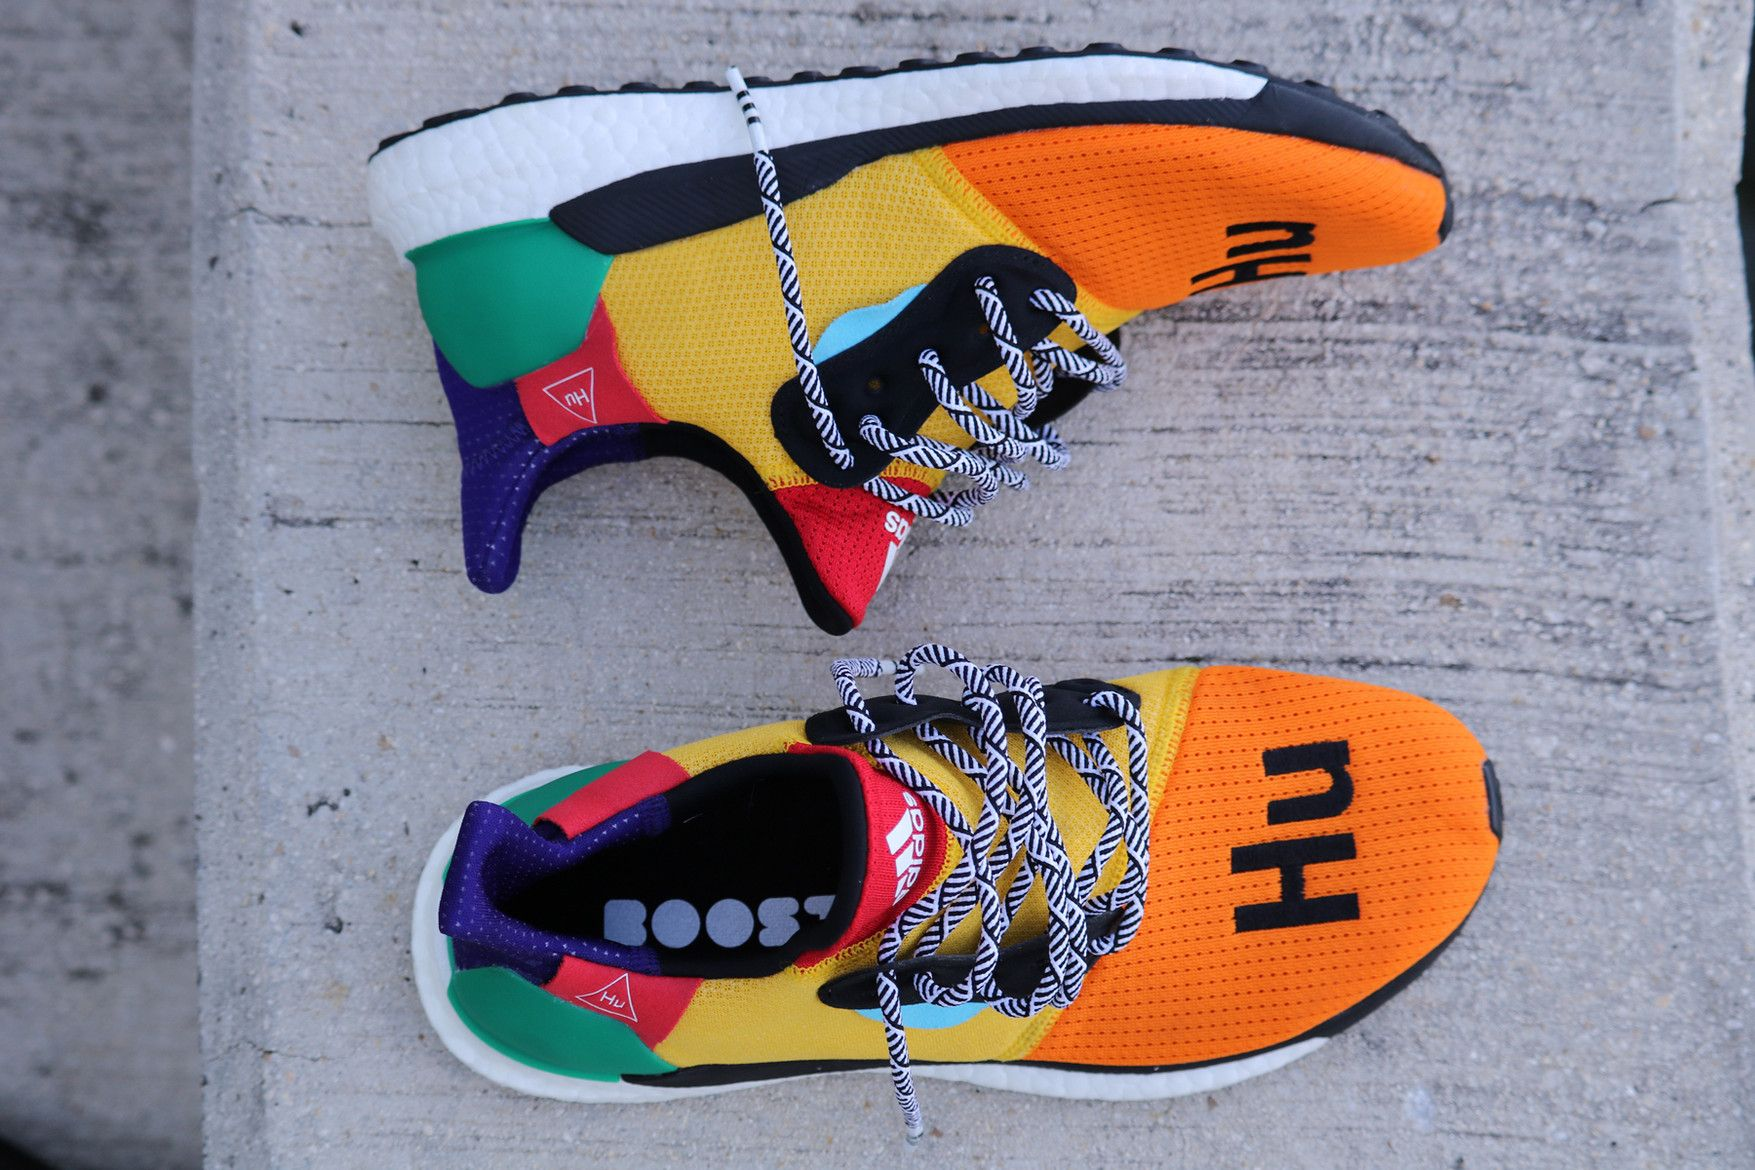 50b7db823 An On-Foot Look at the Pharrell x adidas Solar Hu Glide St